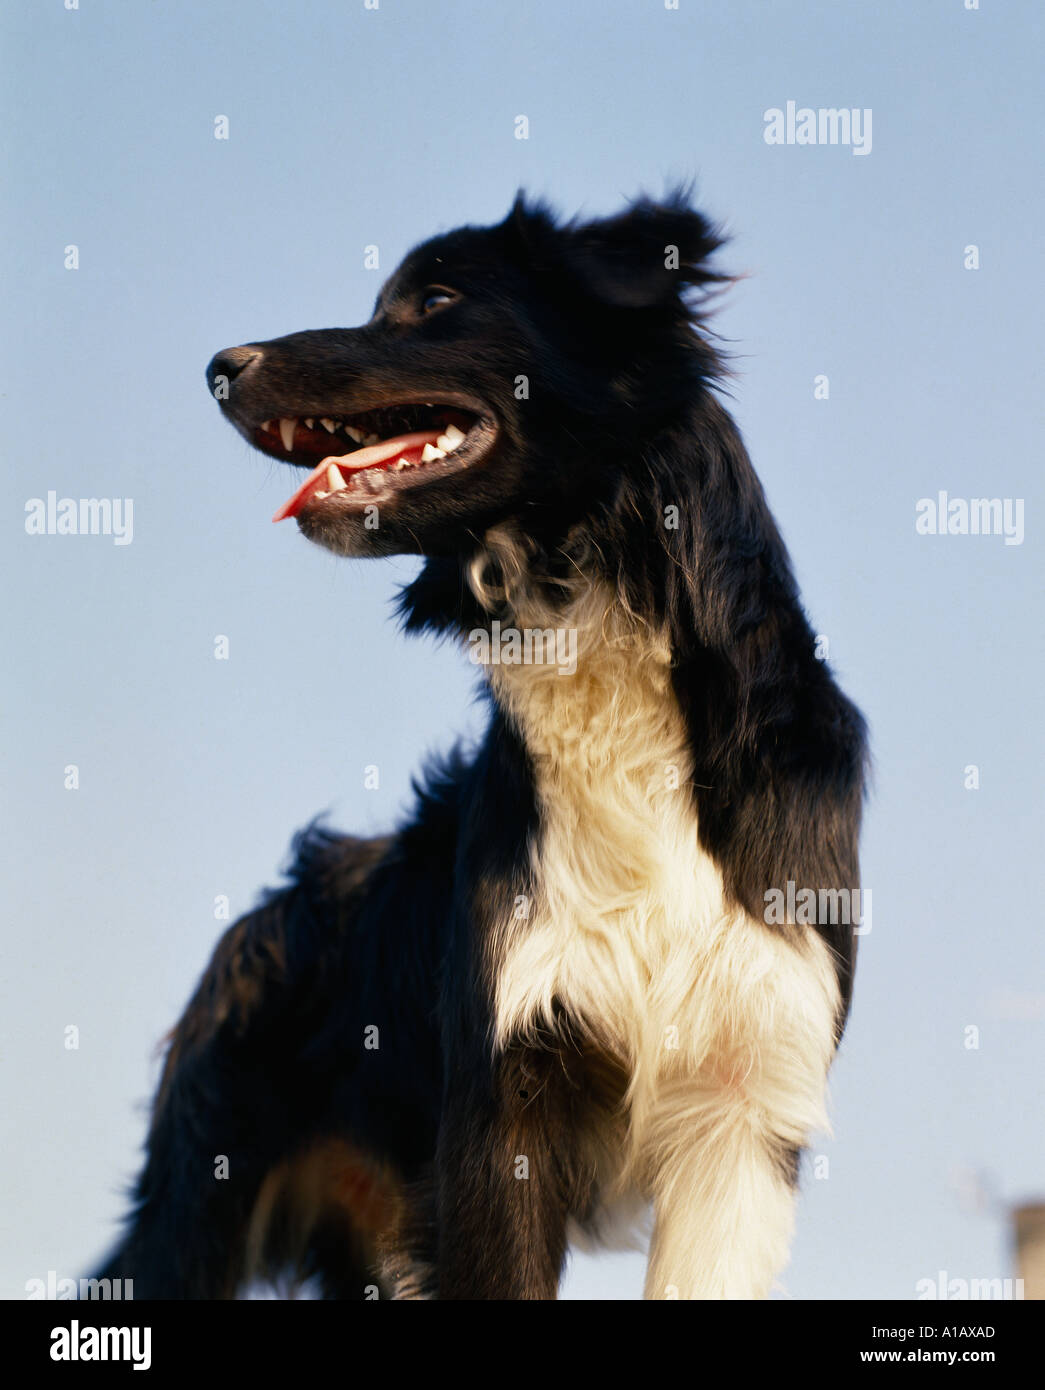 ireland, county offaly, adult sheep dog  dogs standing on an irish inland quay wall, - Stock Image